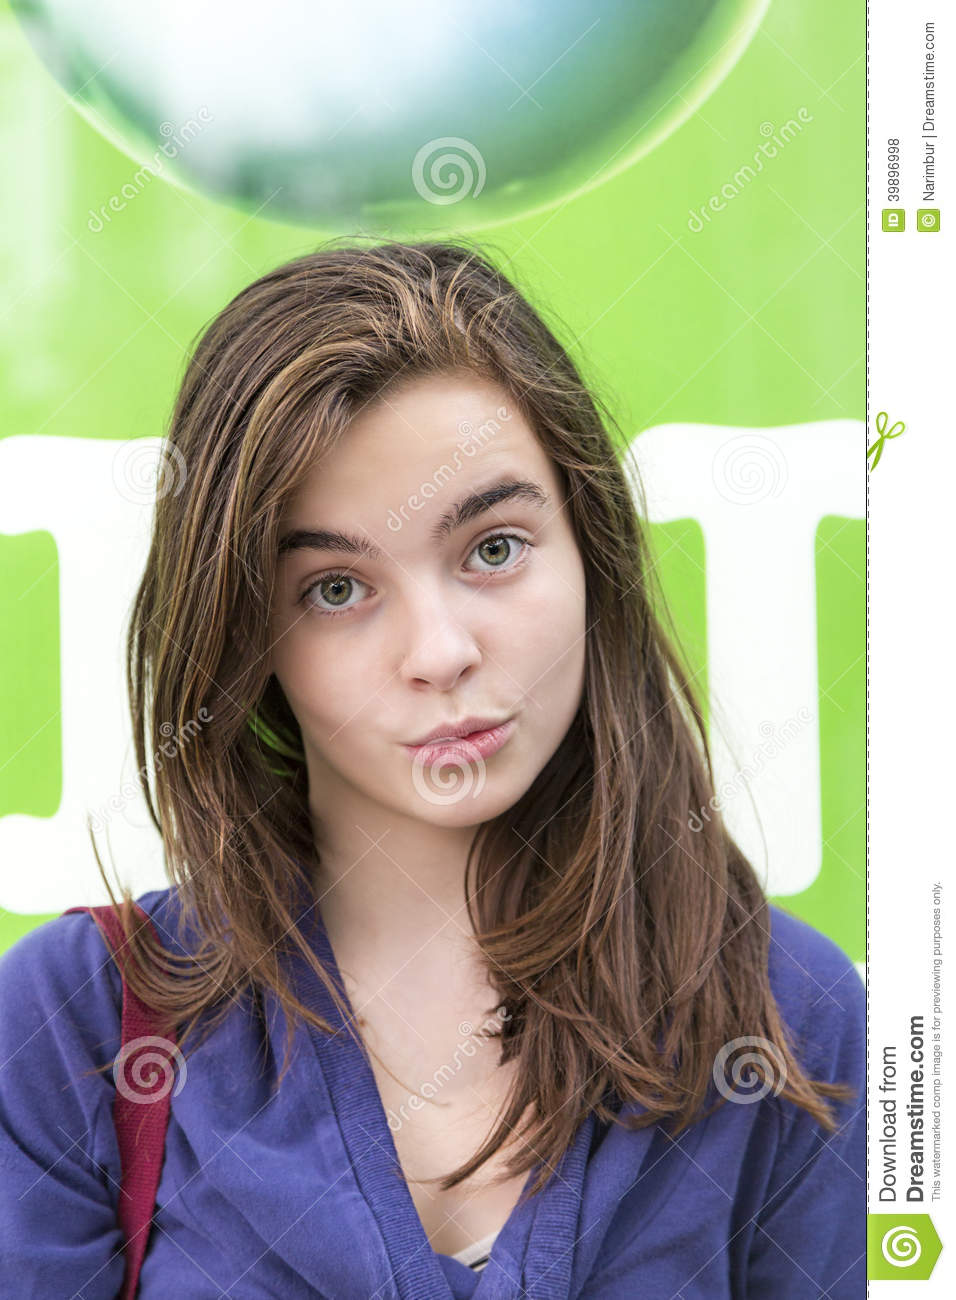 Female Smirking Teenager Stock Photo. Image Of Beautiful